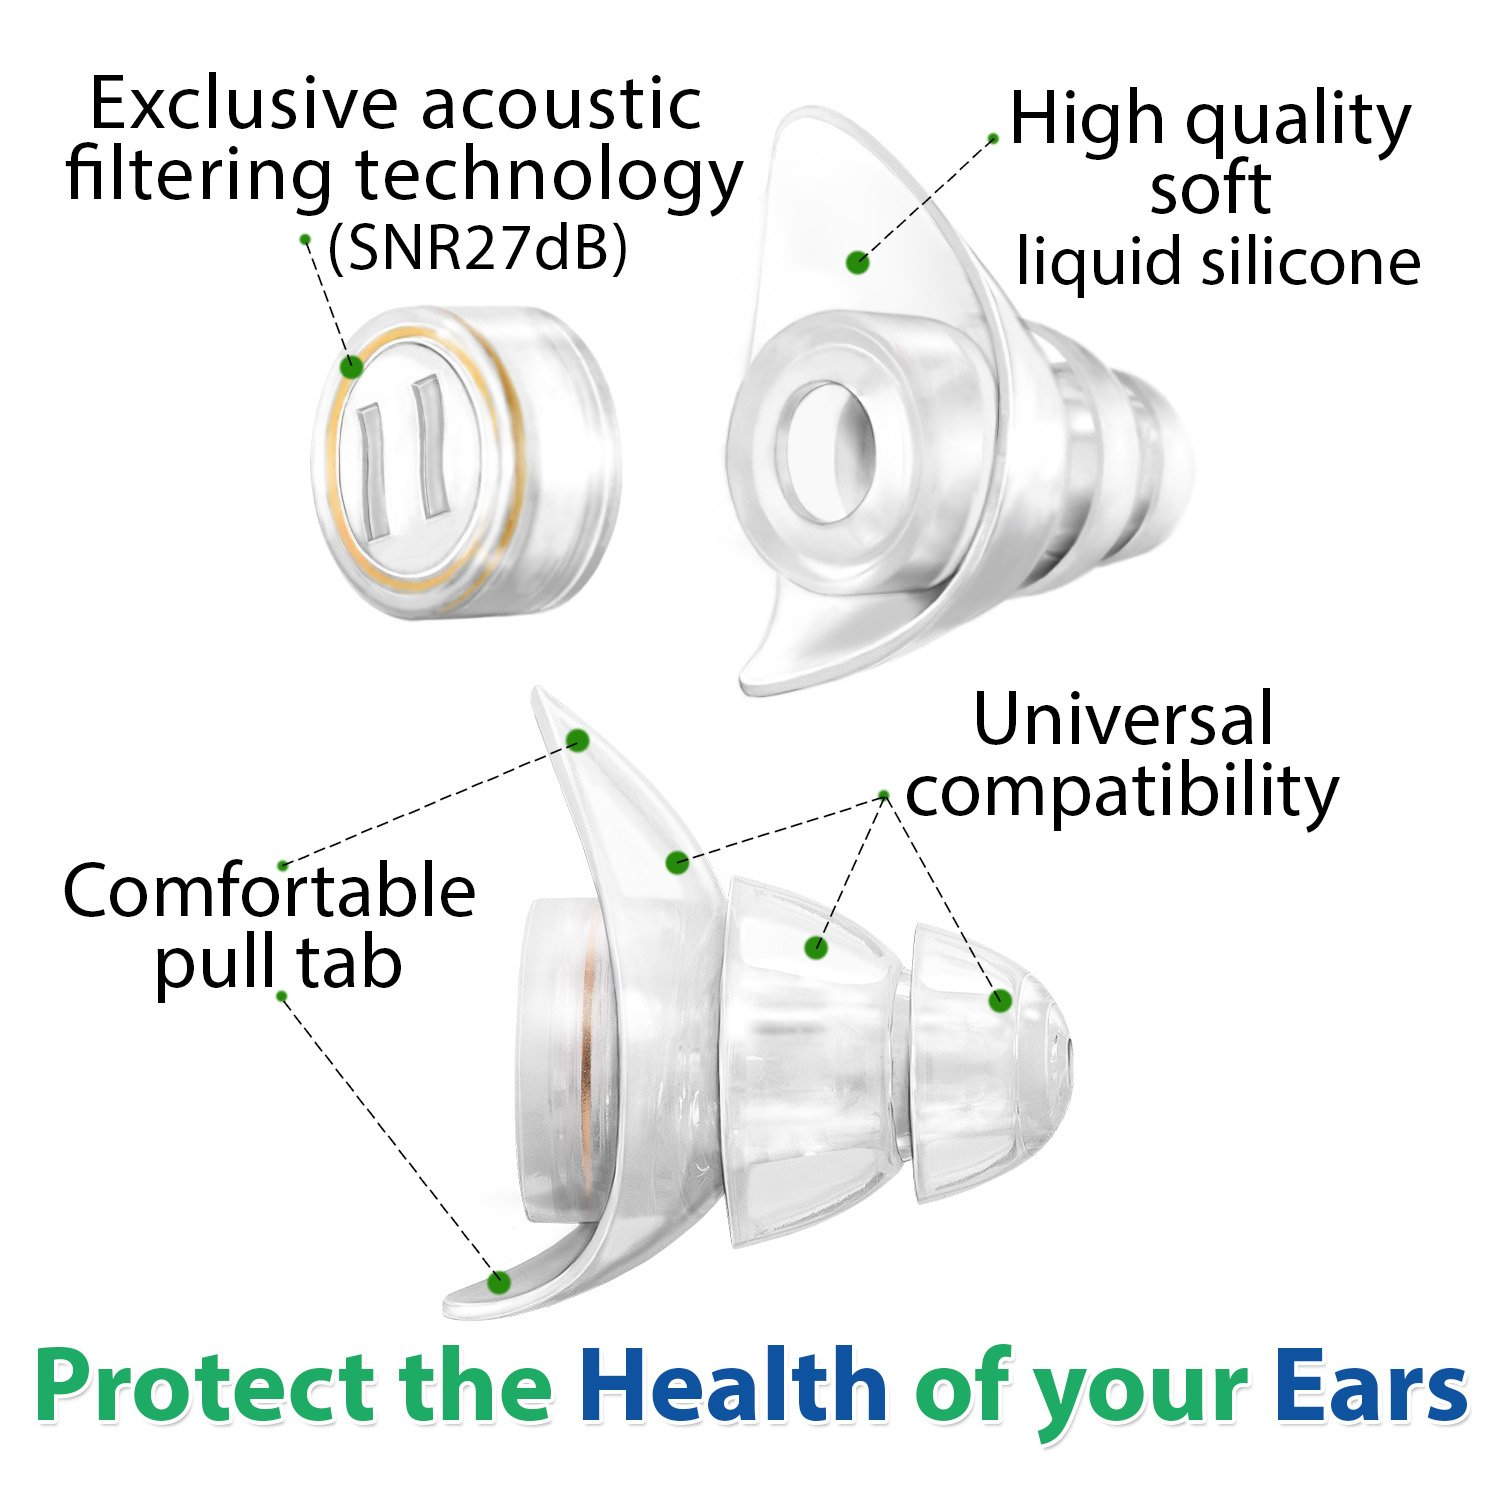 Sound Reducing Professional Ear Plugs - Most Effective Noise Reduction Ear Plugs for Concerts, Work, Sleep and Motorcycle Ear Protection - Soft and Comfortable Reusable Ear Plugs - Earplugs Sleep by Inbound Vibes (Image #3)